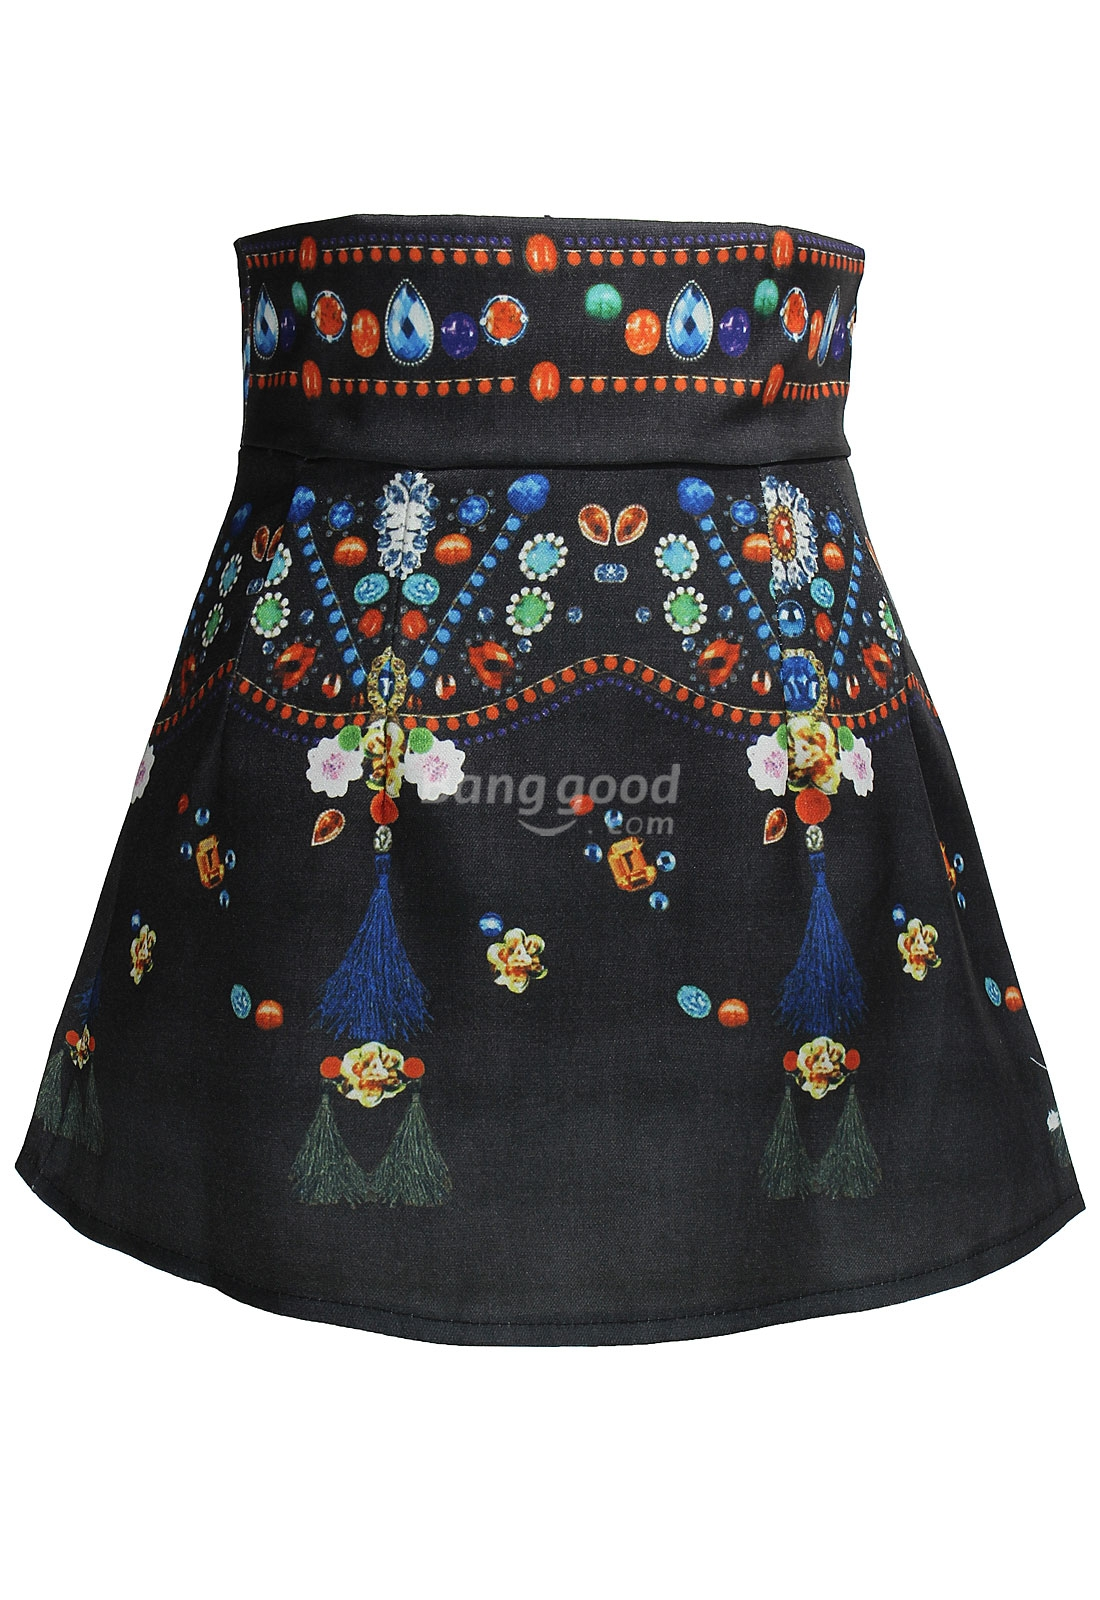 BG-impression Women's Vintage Flower Short Skirt - CA$14.88